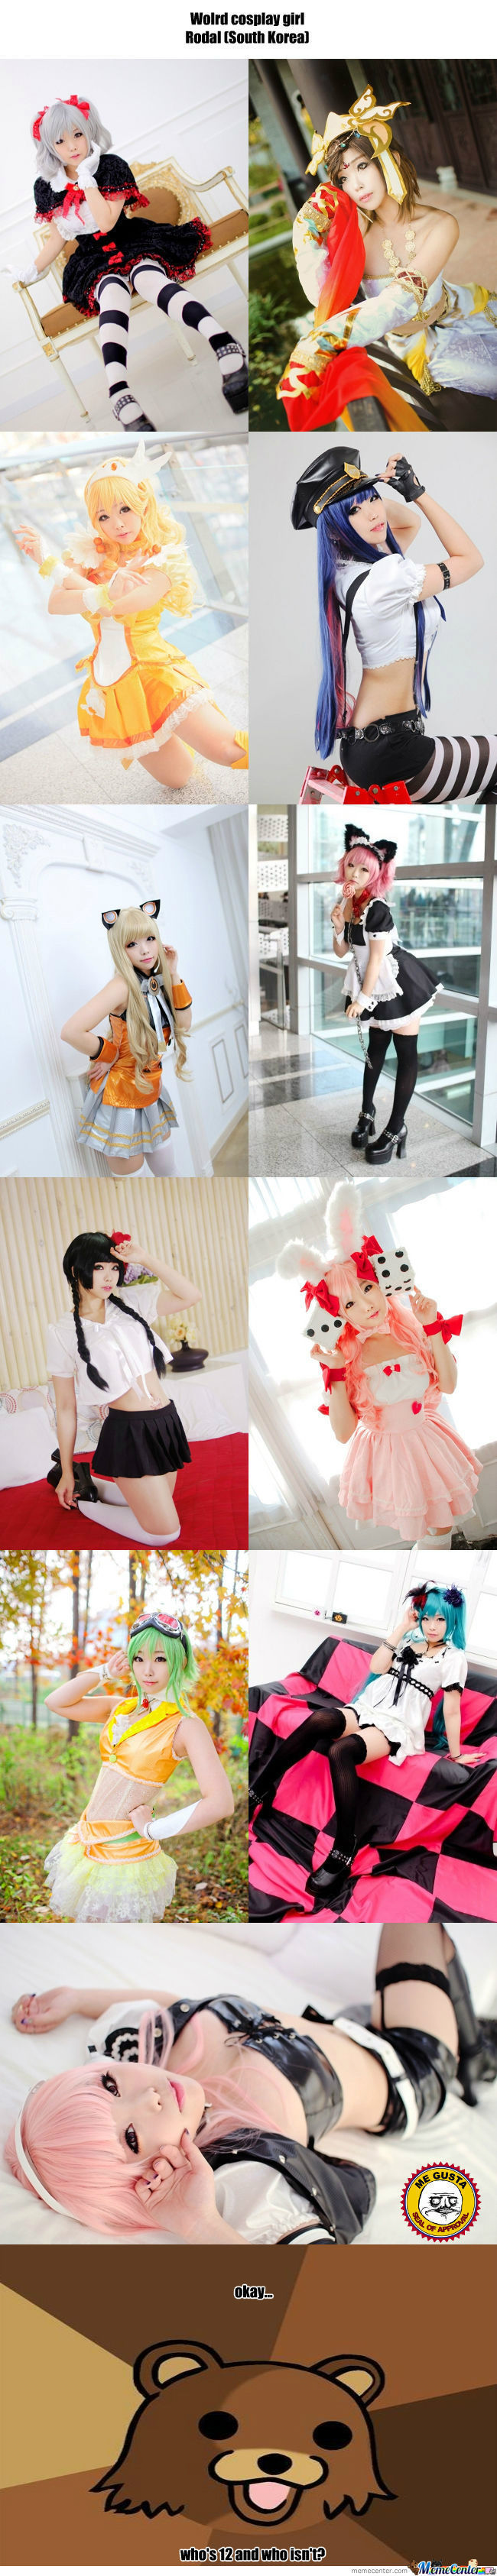 [RMX] Cosplay Girl 45 : Rodal (South Korea)